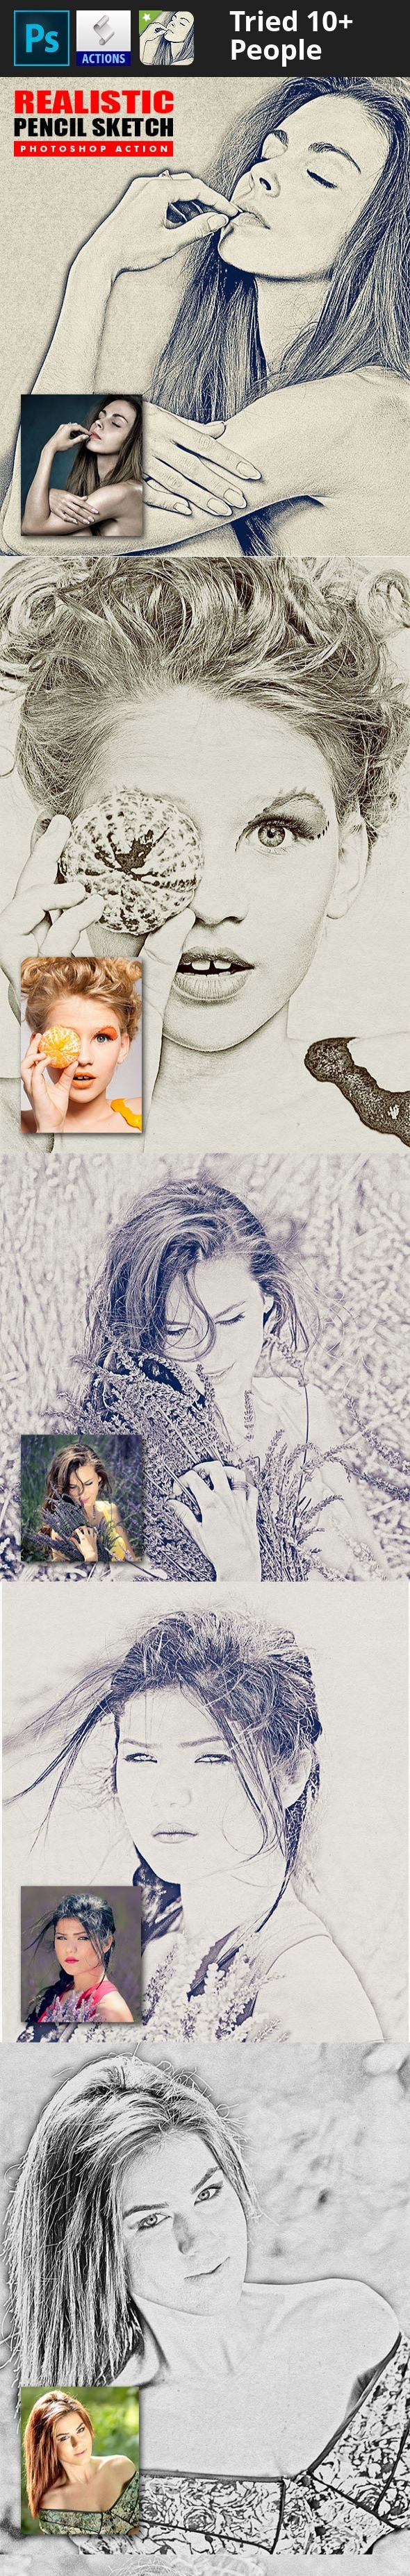 action, atn, attraction, auto, best, blur, clear, color, digital, electric, glow, gradient, graphicriver, hdr, image, paint, painting, photography, photoshop, picture, premium, professional, quality, Realistic Pencil Sketch, retouch, smart, tone, ultimate, update, vintage Realistic Pencil Sketch Photoshop Action : Create professional realistic pencil sketch images from your photos in the easiest possible way. Not only is it simple to it then becomes lots of fun playing around with all the…